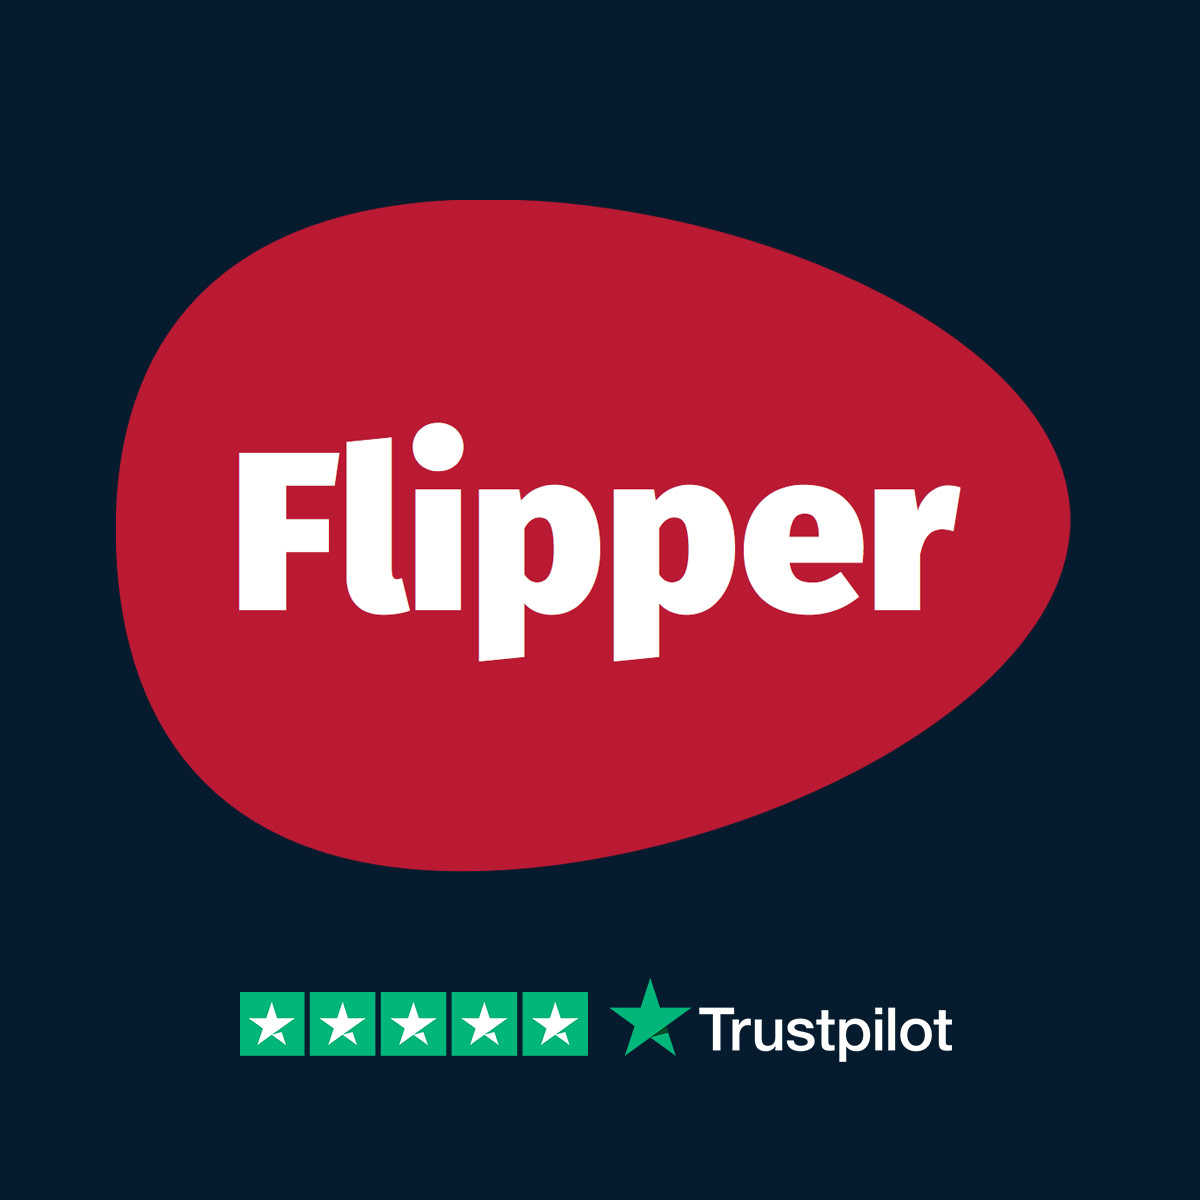 Flipper - Auto Energy Switching, We Don't Switch, We Flip